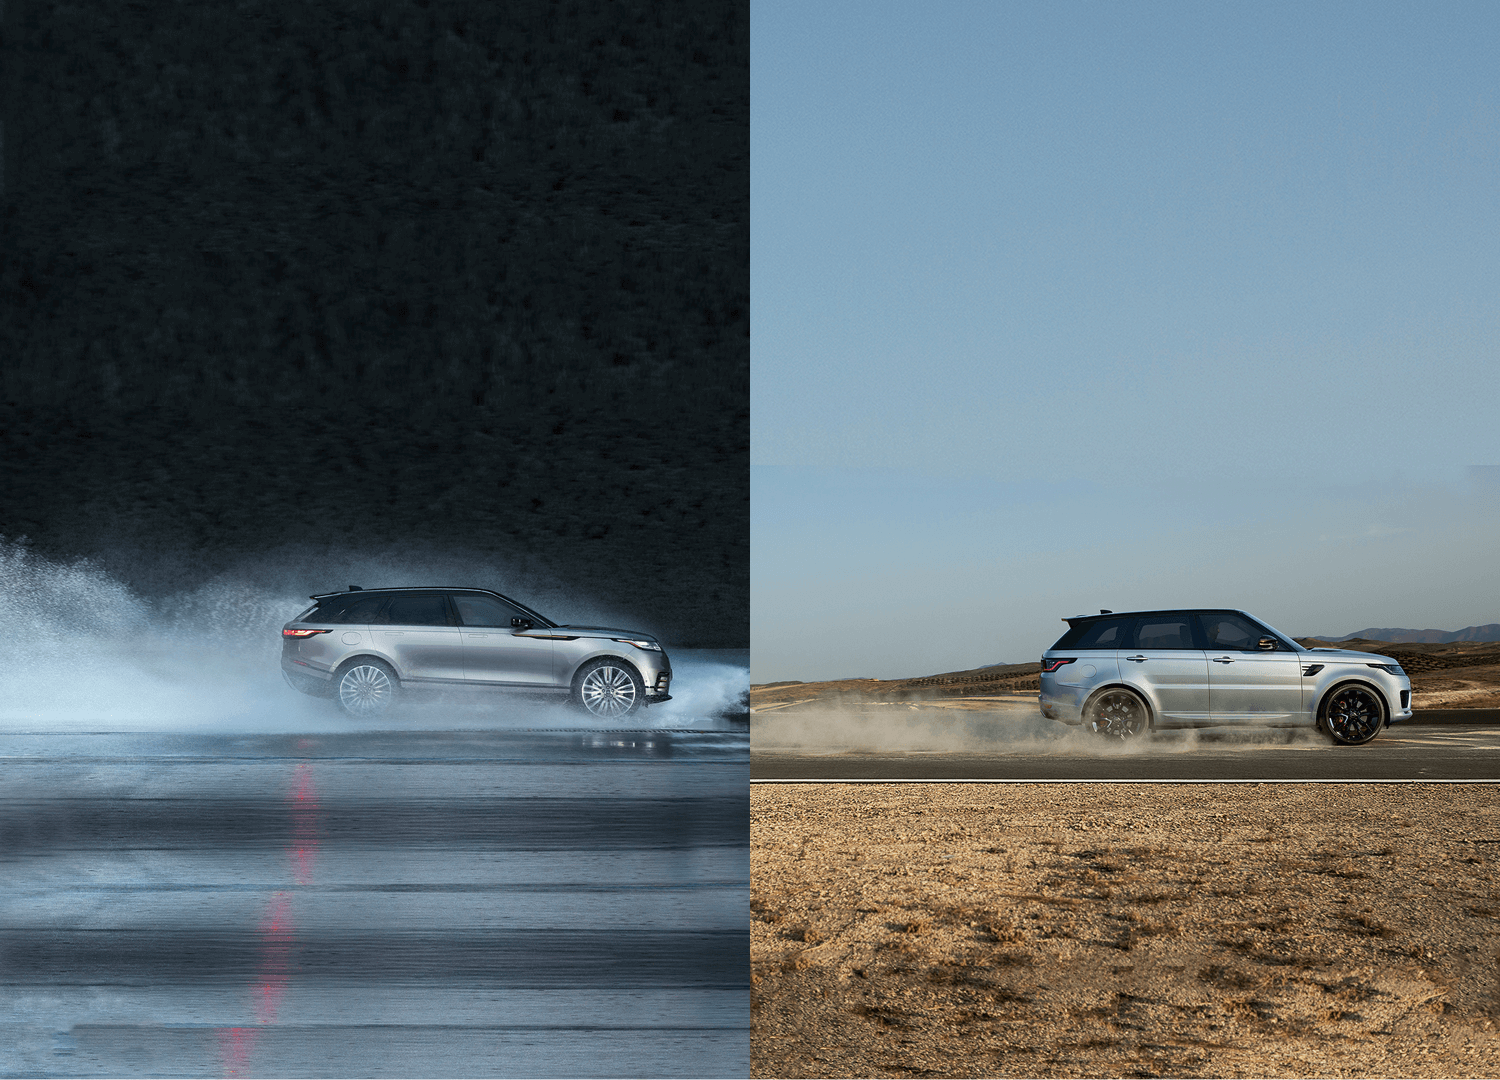 Range Rover Sport vs. Range Rover Velar - Two Magnificent Beasts